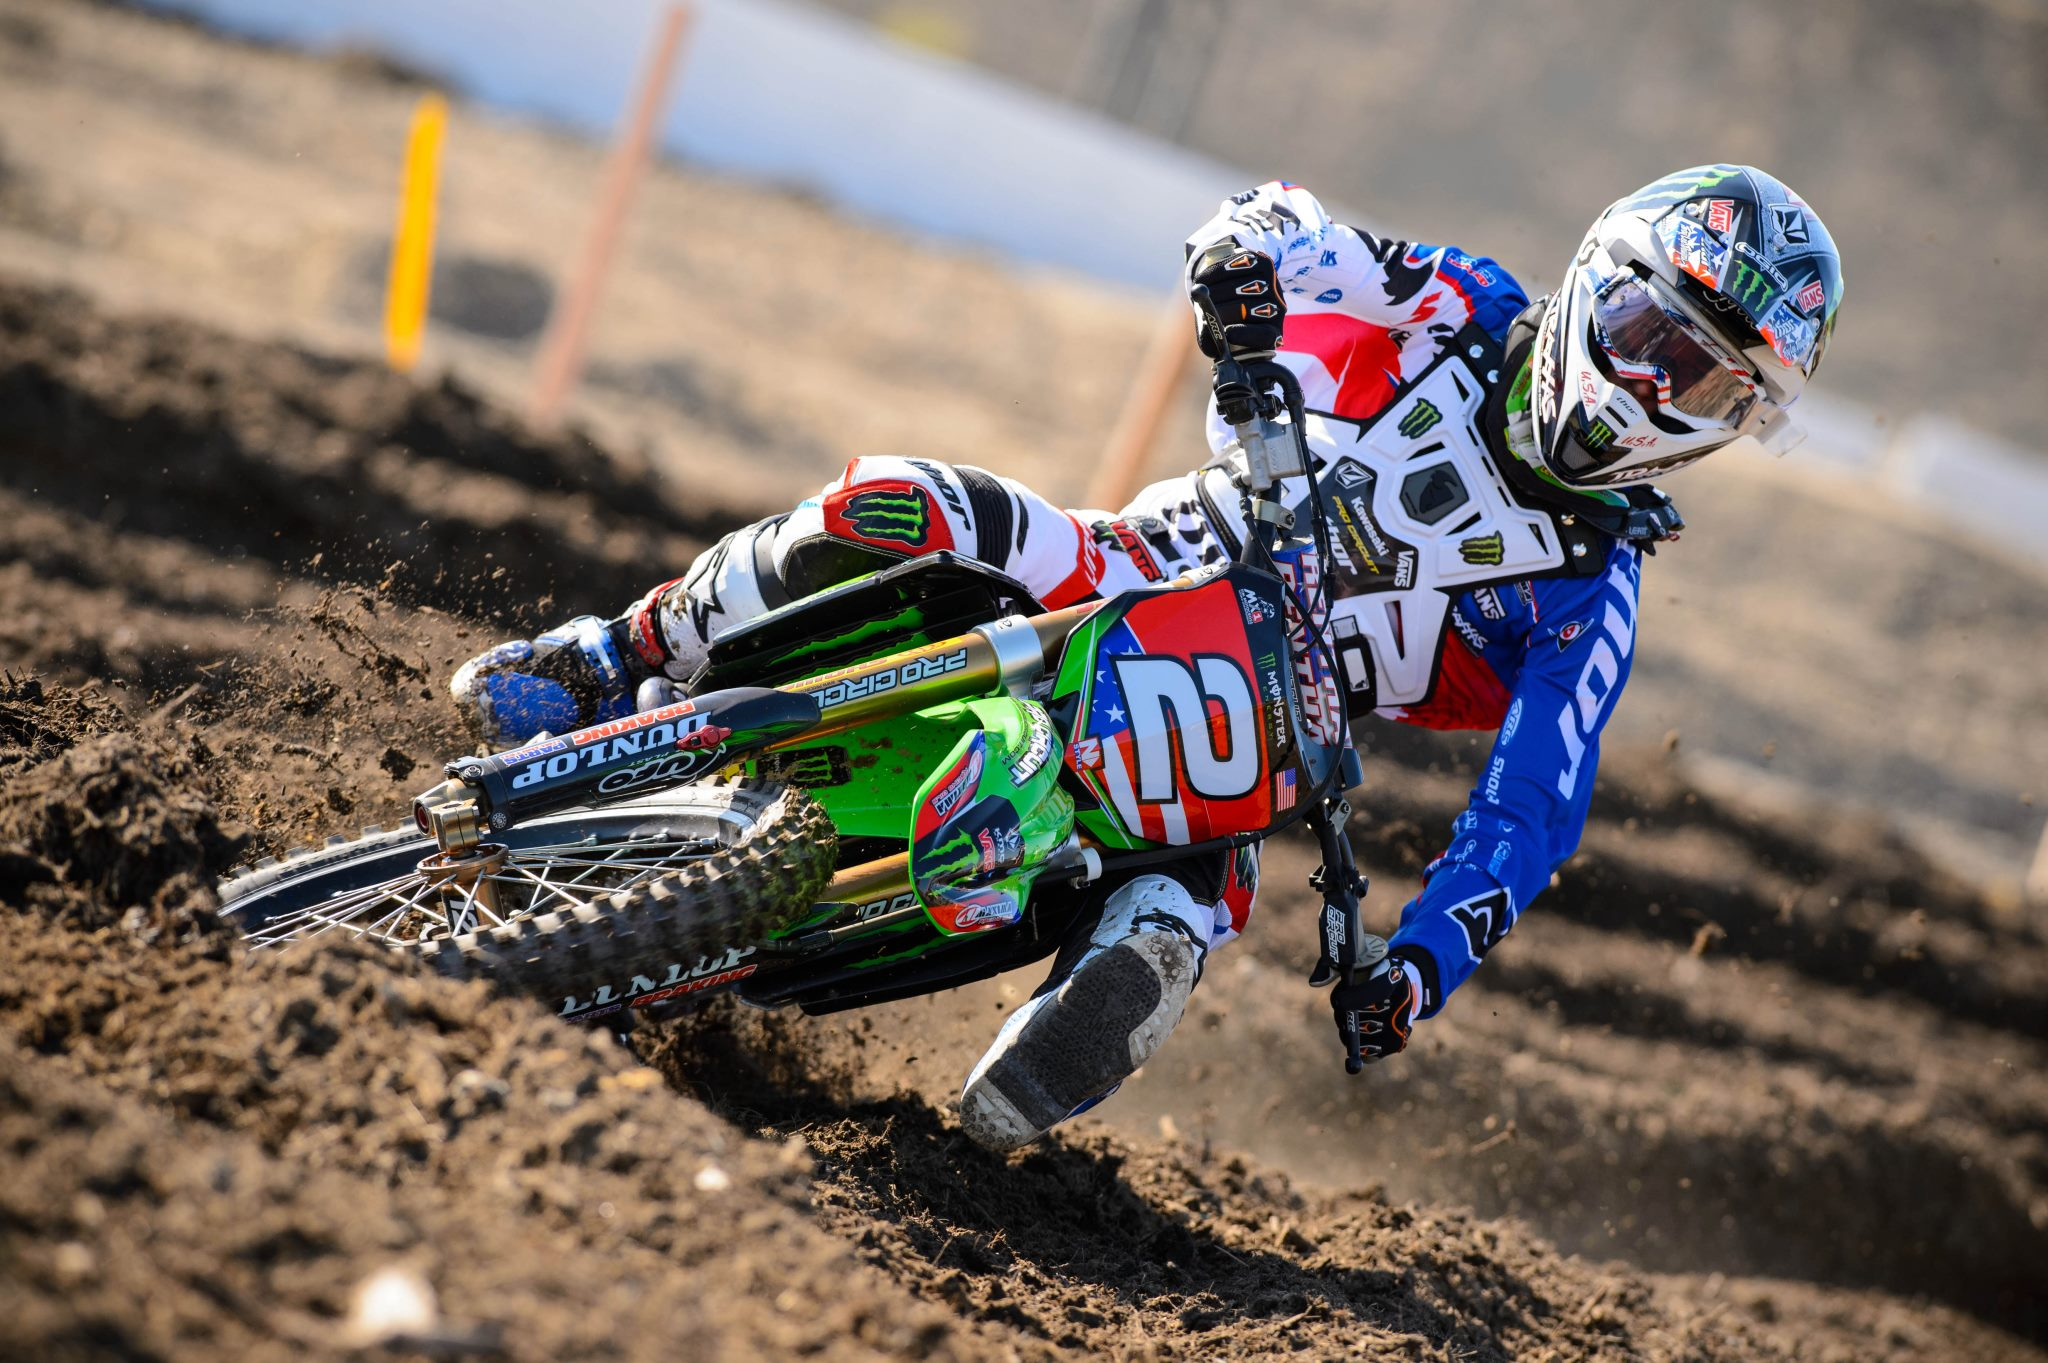 Motorsports Blake Baggett debuts the USA Team gear for the 2012 Motocross of Nations!